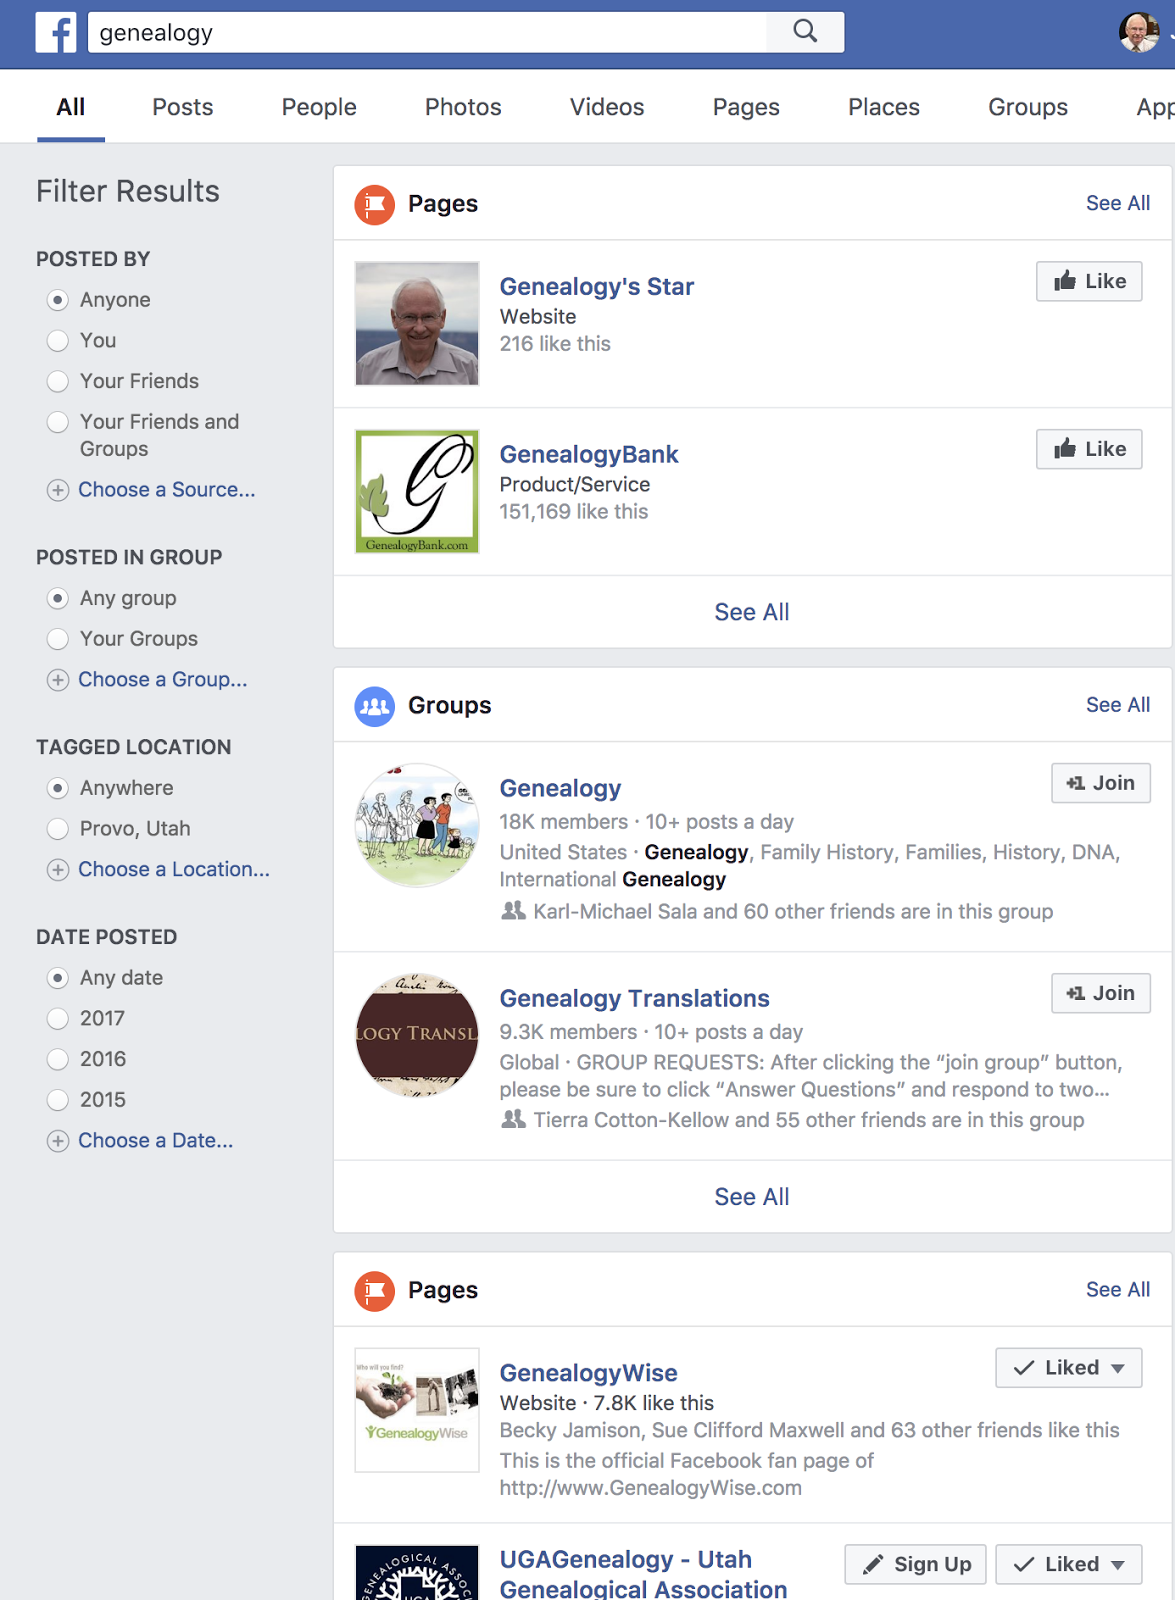 Genealogy's Star: Visiting Facebook Genealogy